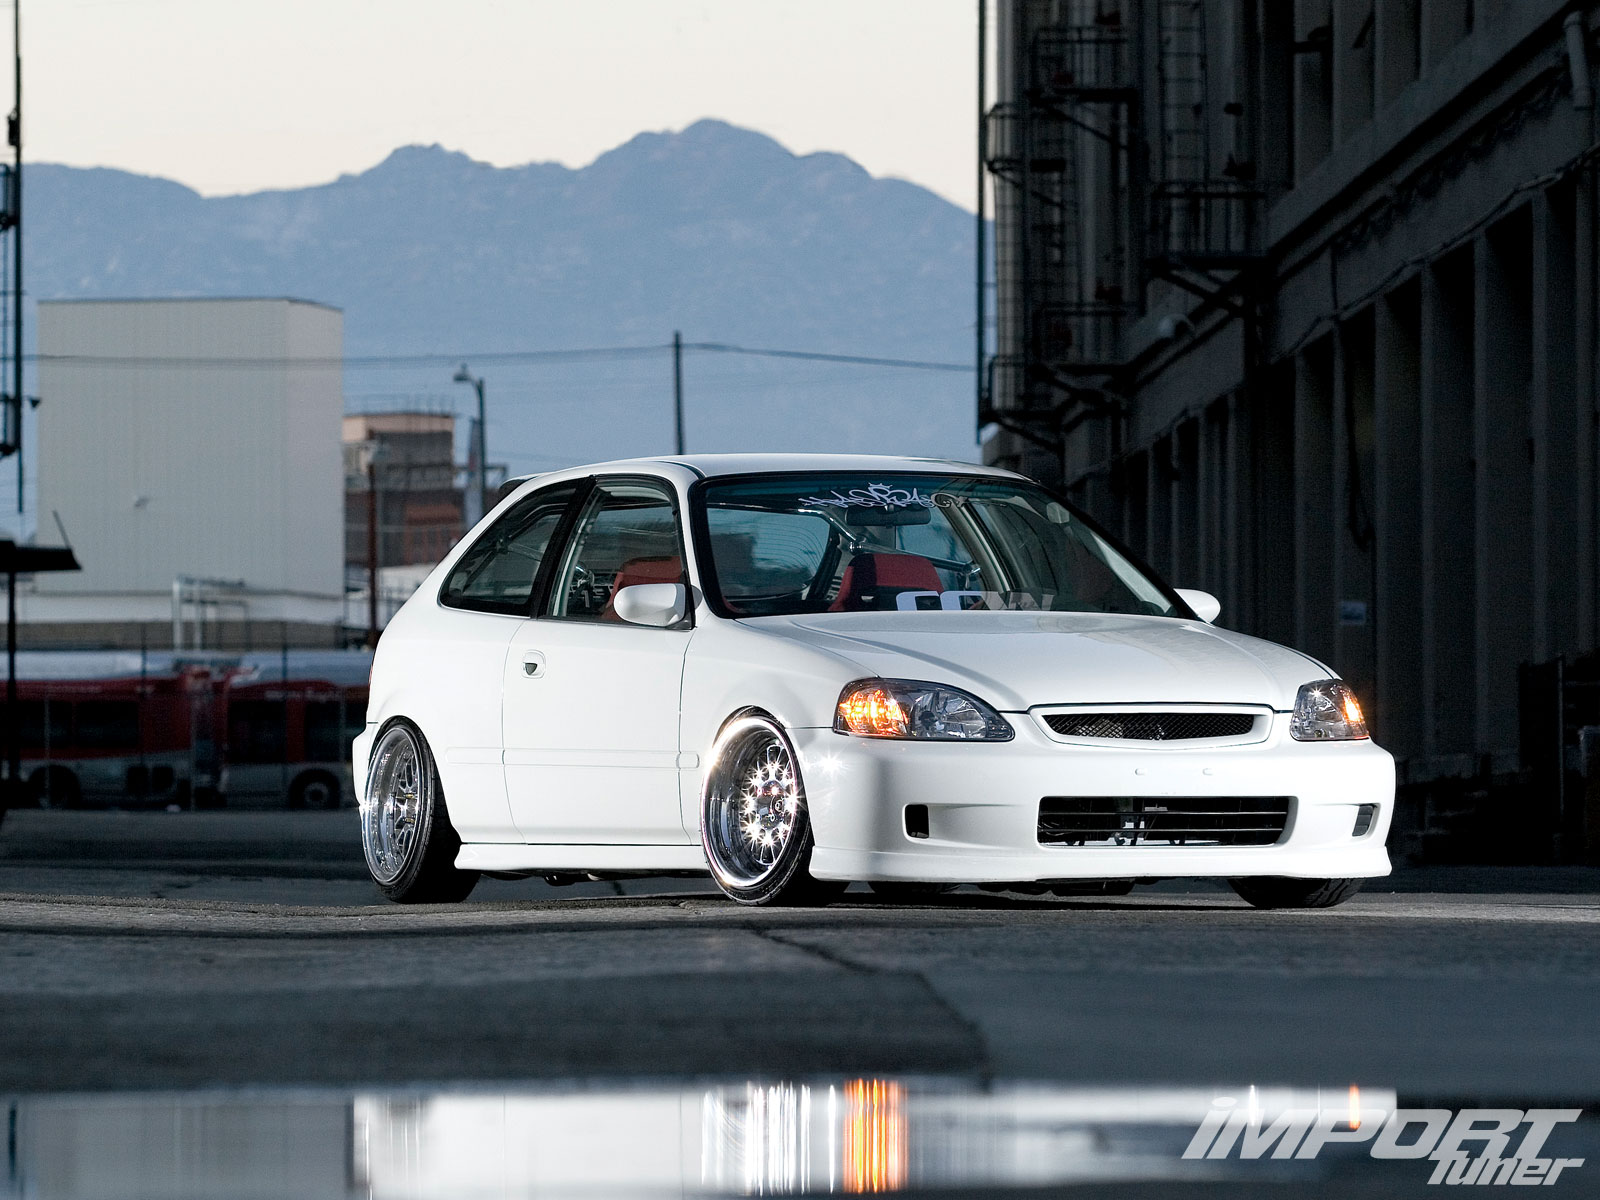 Honda Civic #23